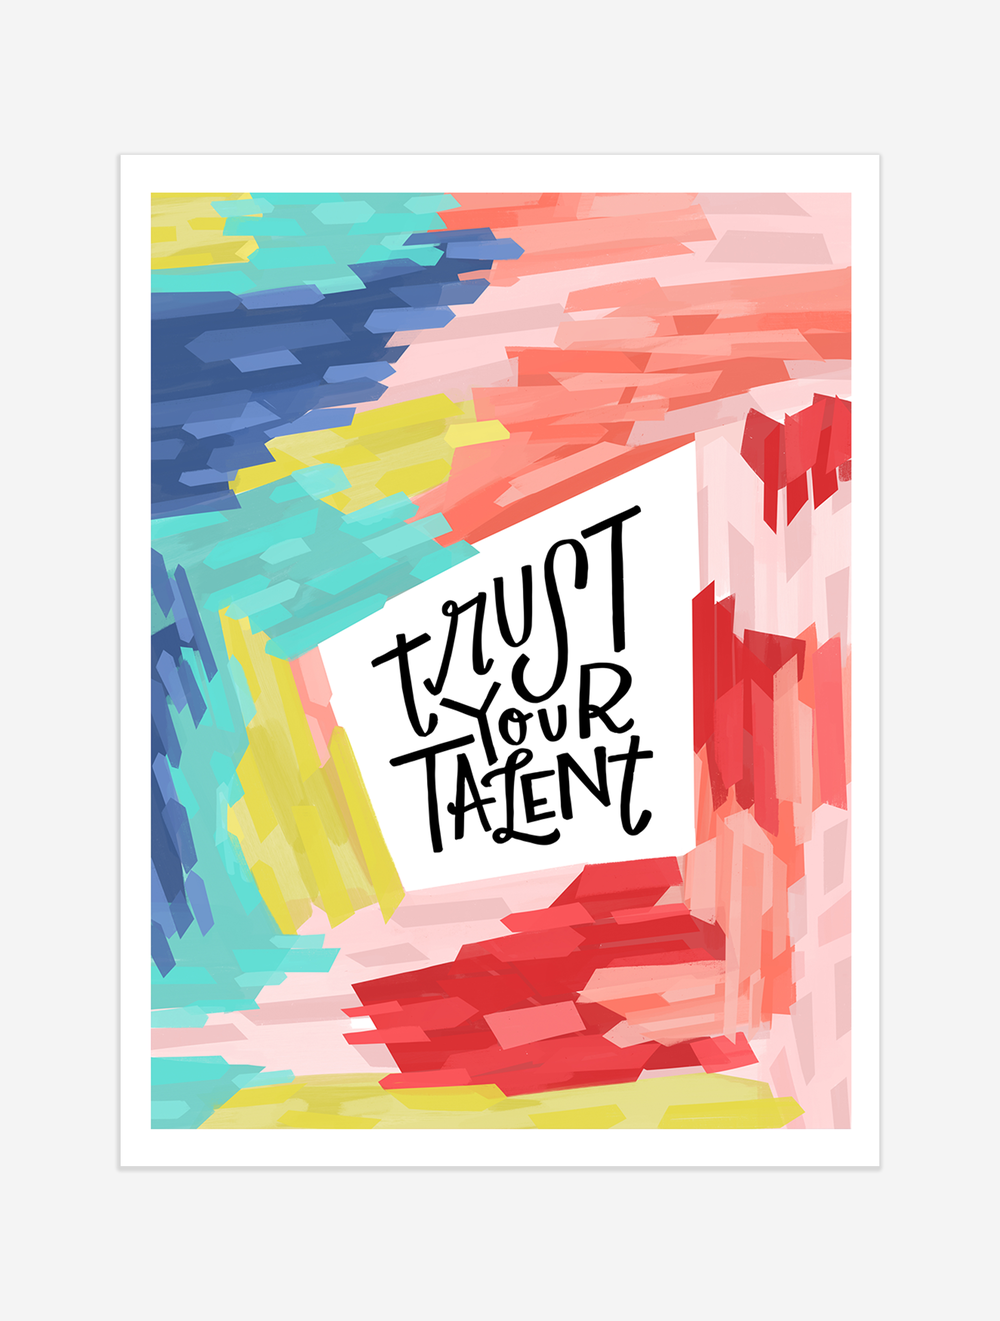 A reminder to listen to your inner voice and trust your talents! $25 giclee print available at the Made Vibrant Art Shop.